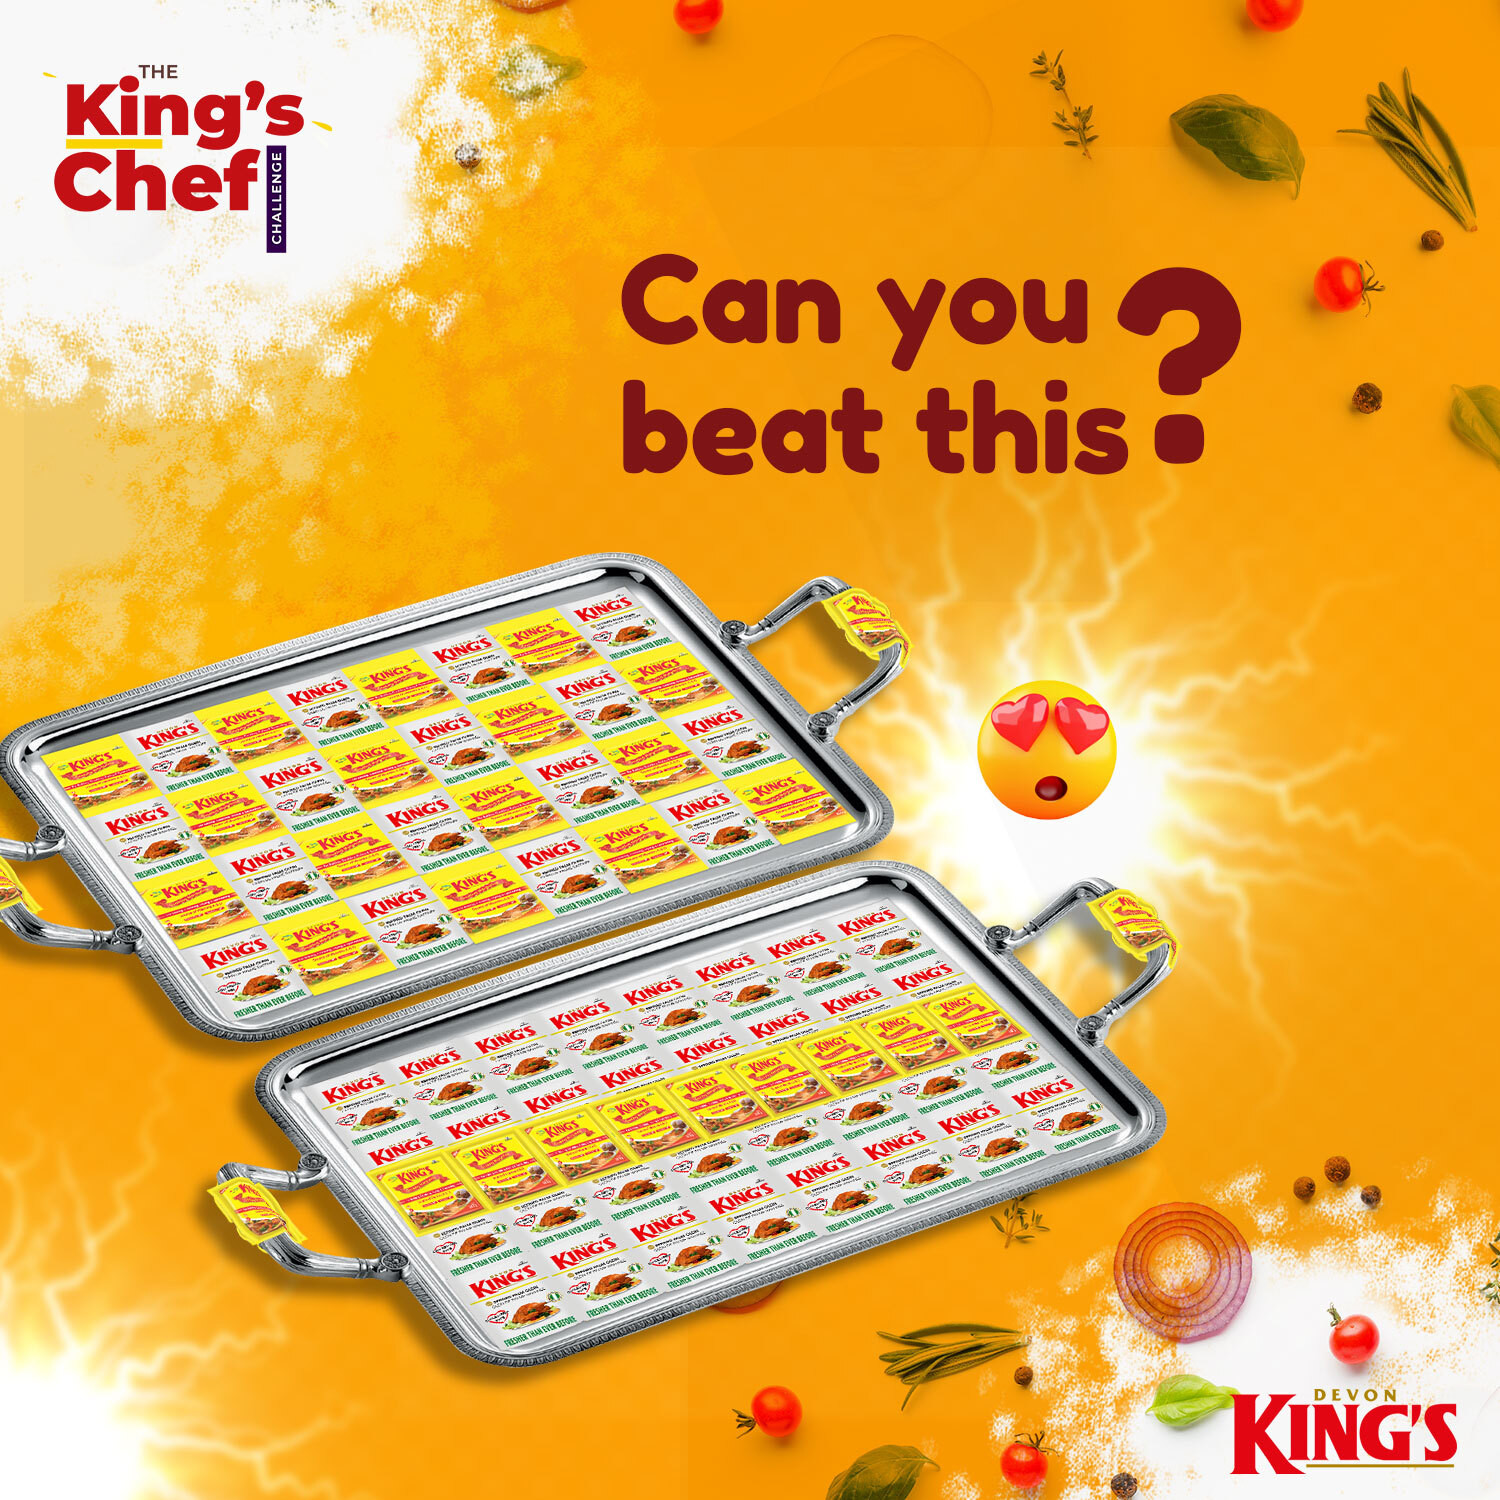 Up to 1 million naira worth prizes up for grabs in the Devon Kings #TheKingsChef challenge lindaikejisblog